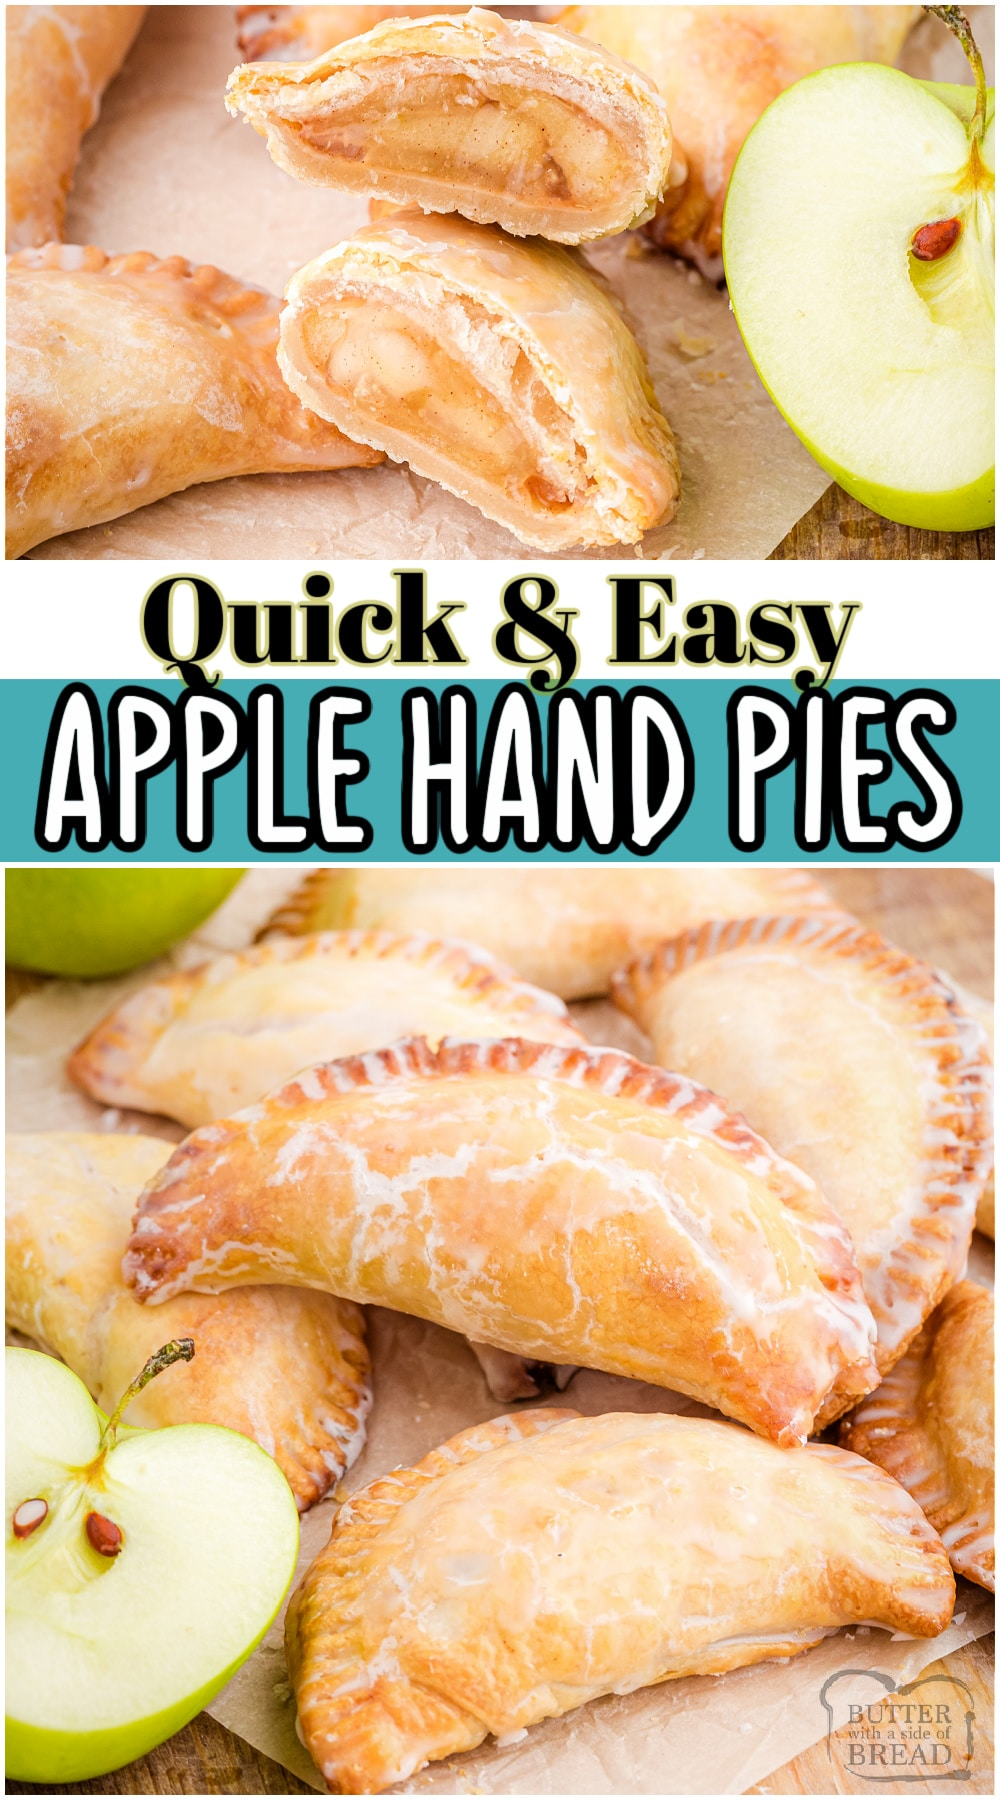 Easy Apple Hand Pies made with fried cinnamon apples, a buttery crust & topped with a simple glaze. These adorable apple hand pies are pure comfort food & taste just like individual apple pies.